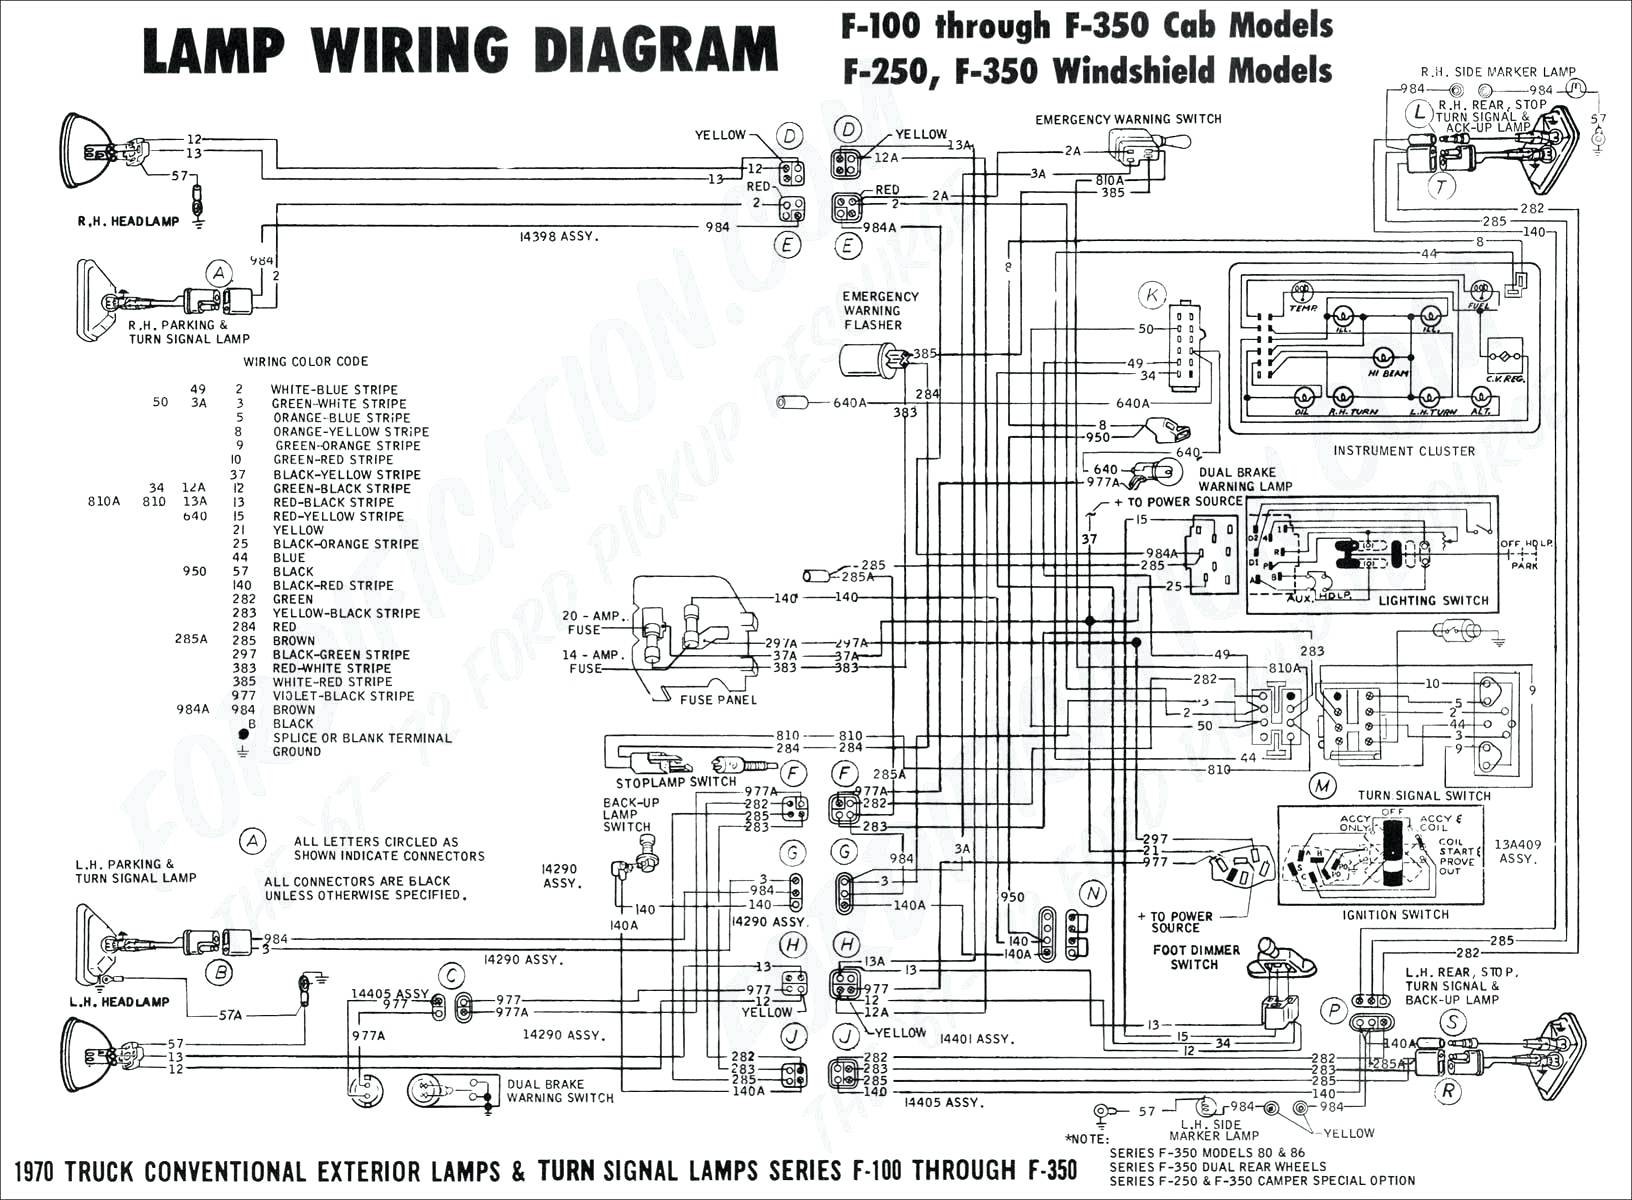 91 Dodge Western Plow Wiring Harness Diagram Free Download - share on